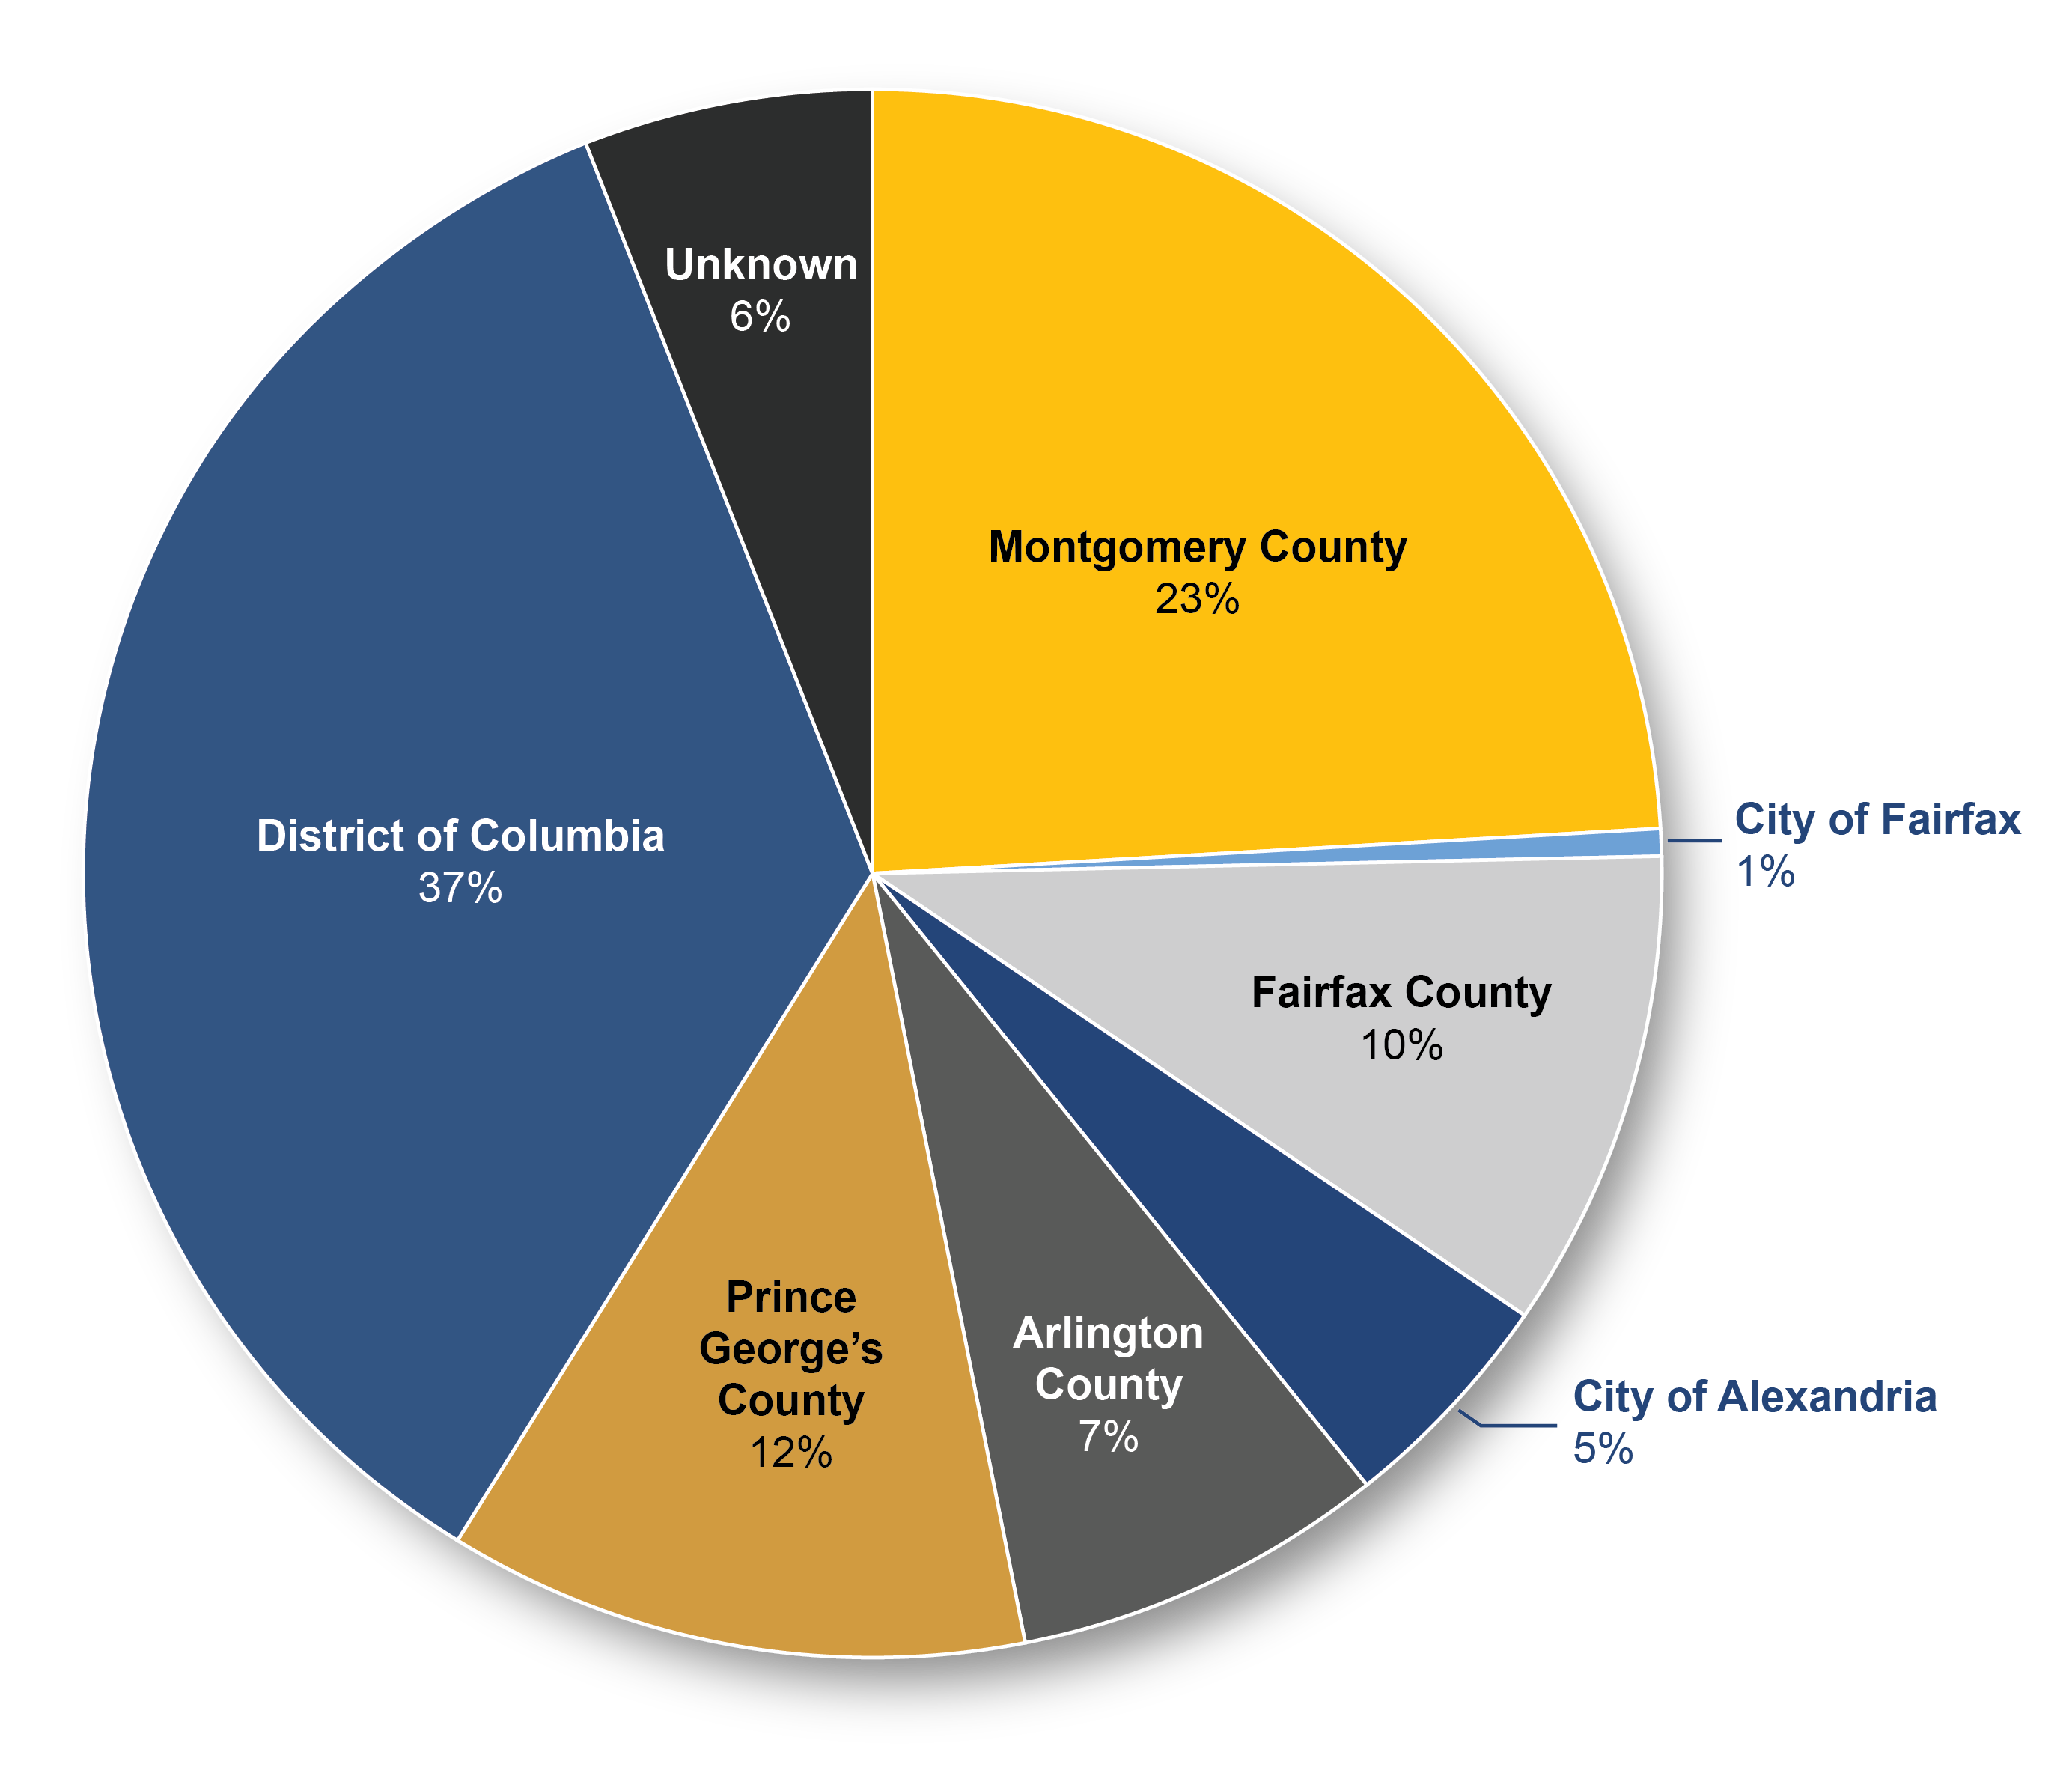 This pie chart shows the percentage of regional bus riders that live in each jurisdiction. Twenty three percent live in Montgomery County, Maryland, one percent live in the City of Fairfax, Virginia, ten percent live in Fairfax County, Virginia, five percent live in the City of Alexandria, Virginia, seven percent live in Arlington County, Virginia, twelve percent live in Prince George's County, Maryland, thirty-seven percent live in the District of Columbia, and six percent live in other or unknown jurisdictions.